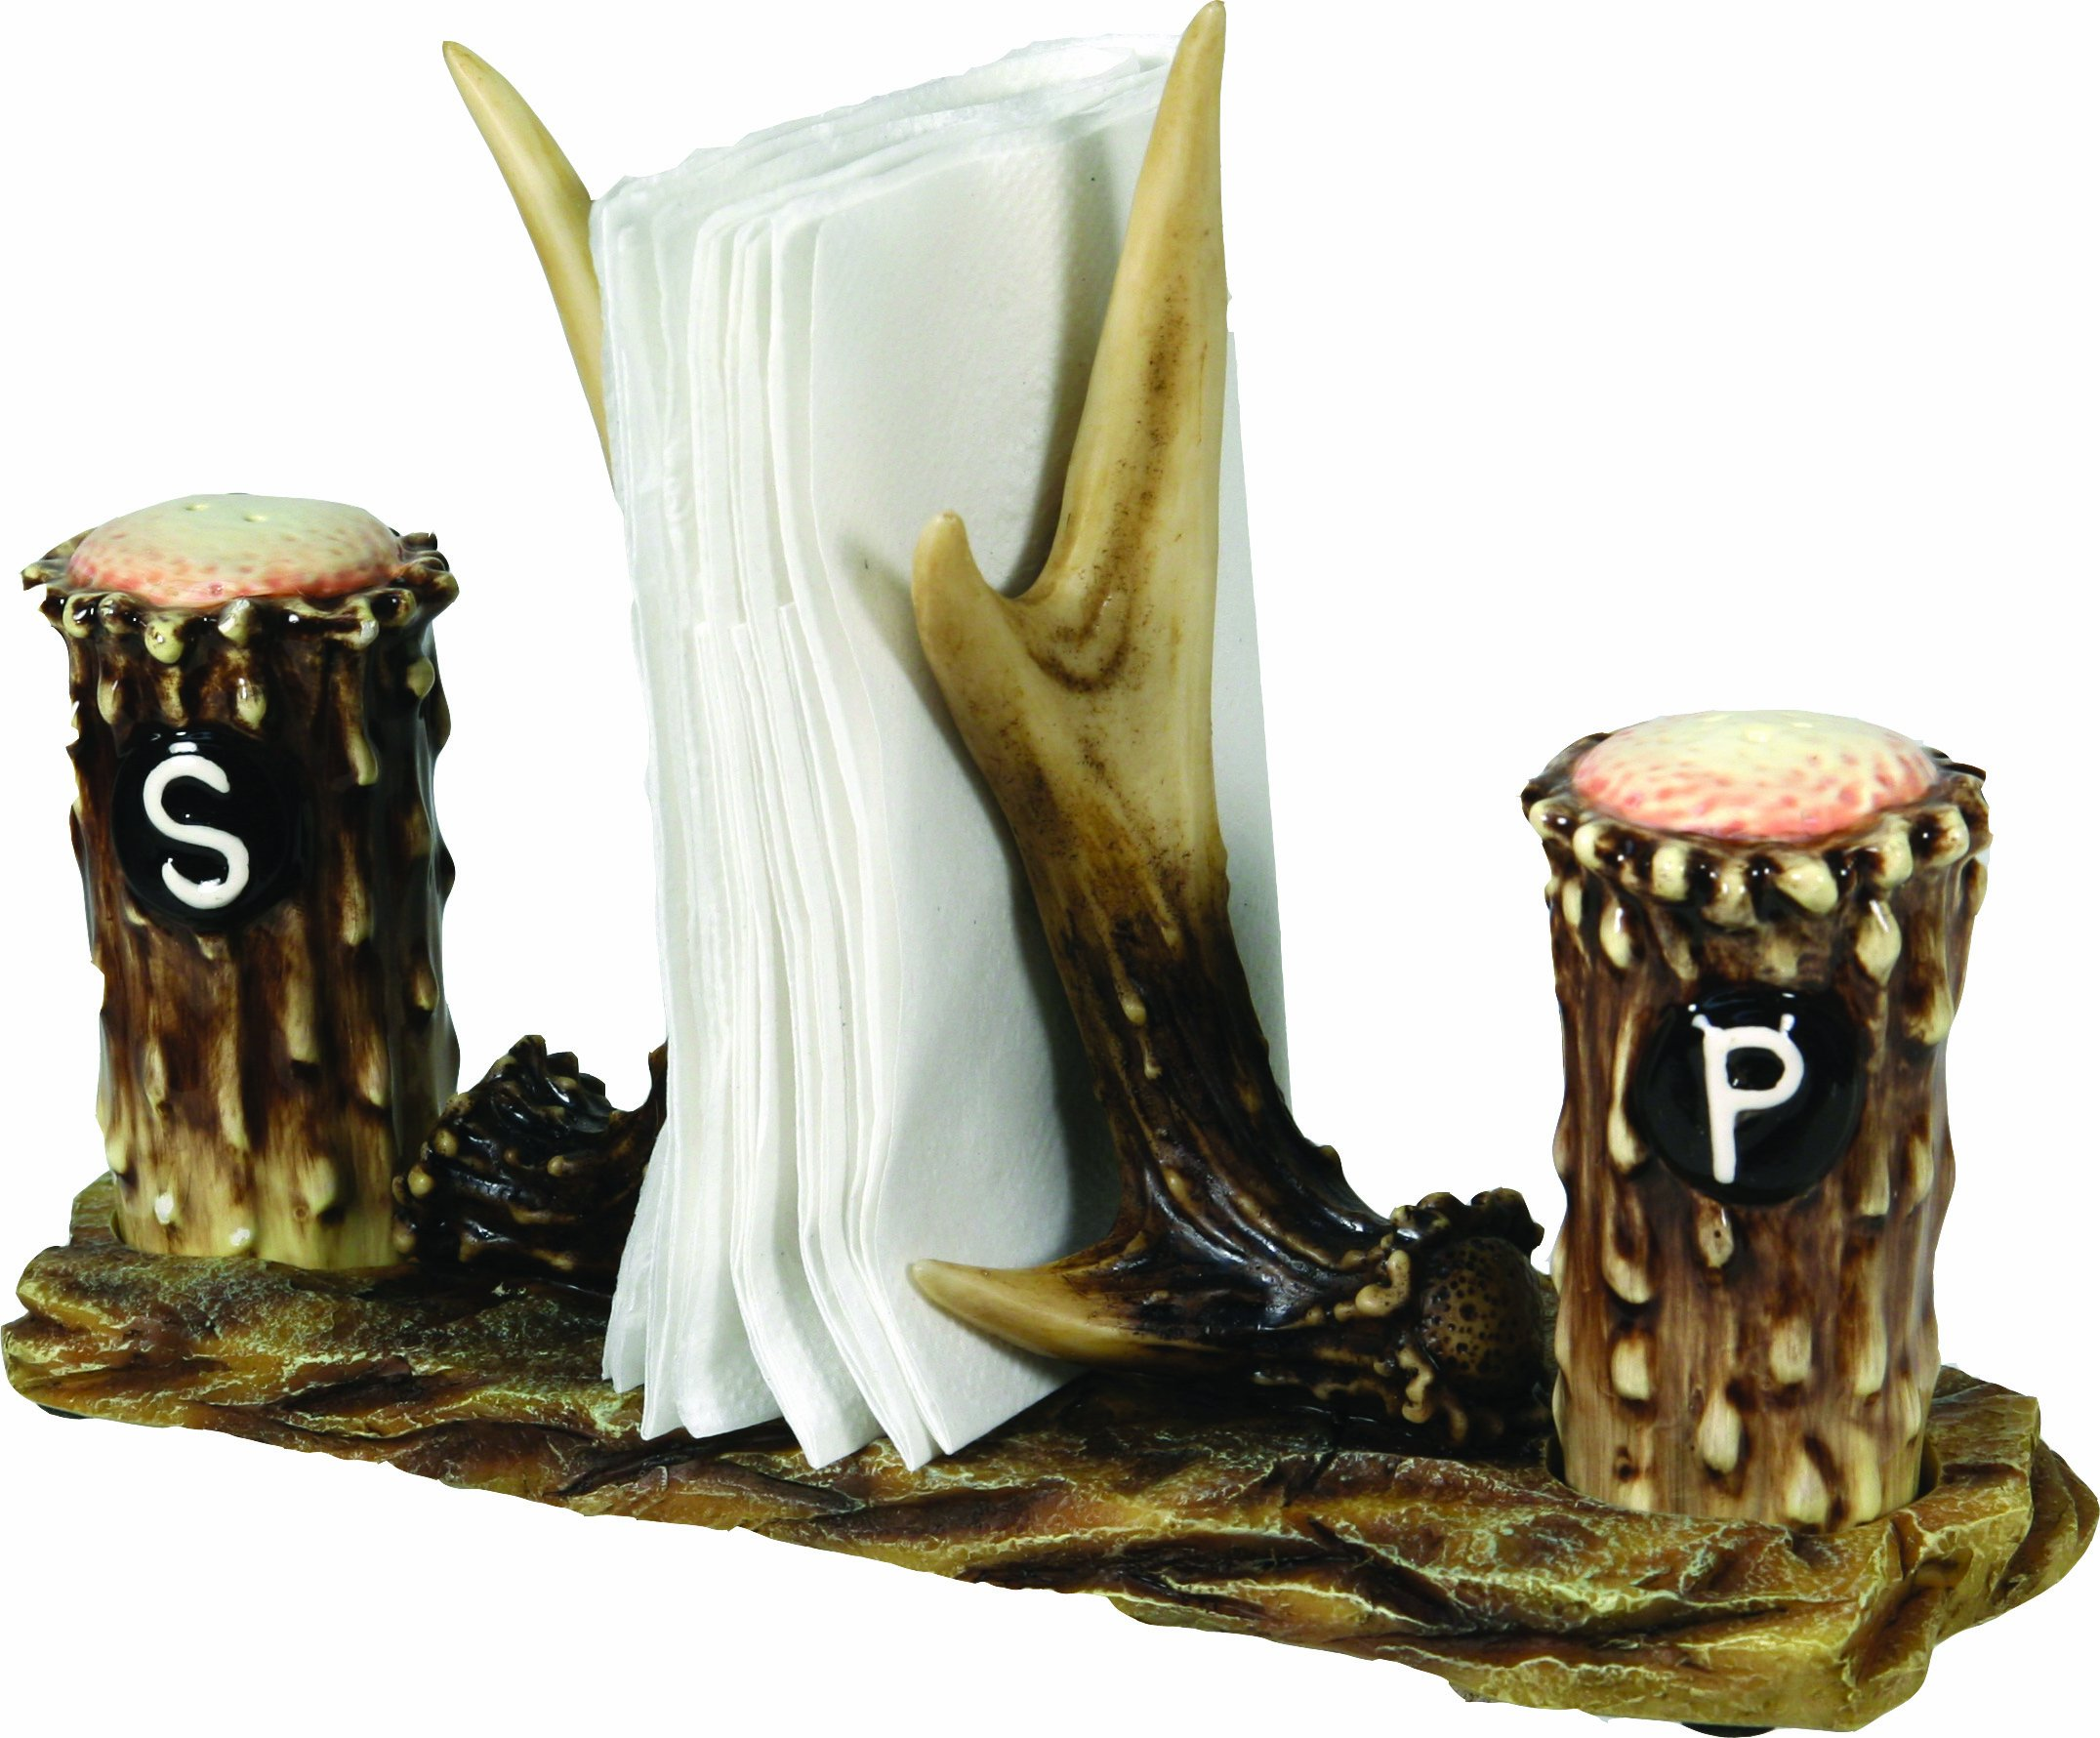 Highly Detailed and Beautifully Painted Antlers Make a Uniquely Beautiful Napkin Holder